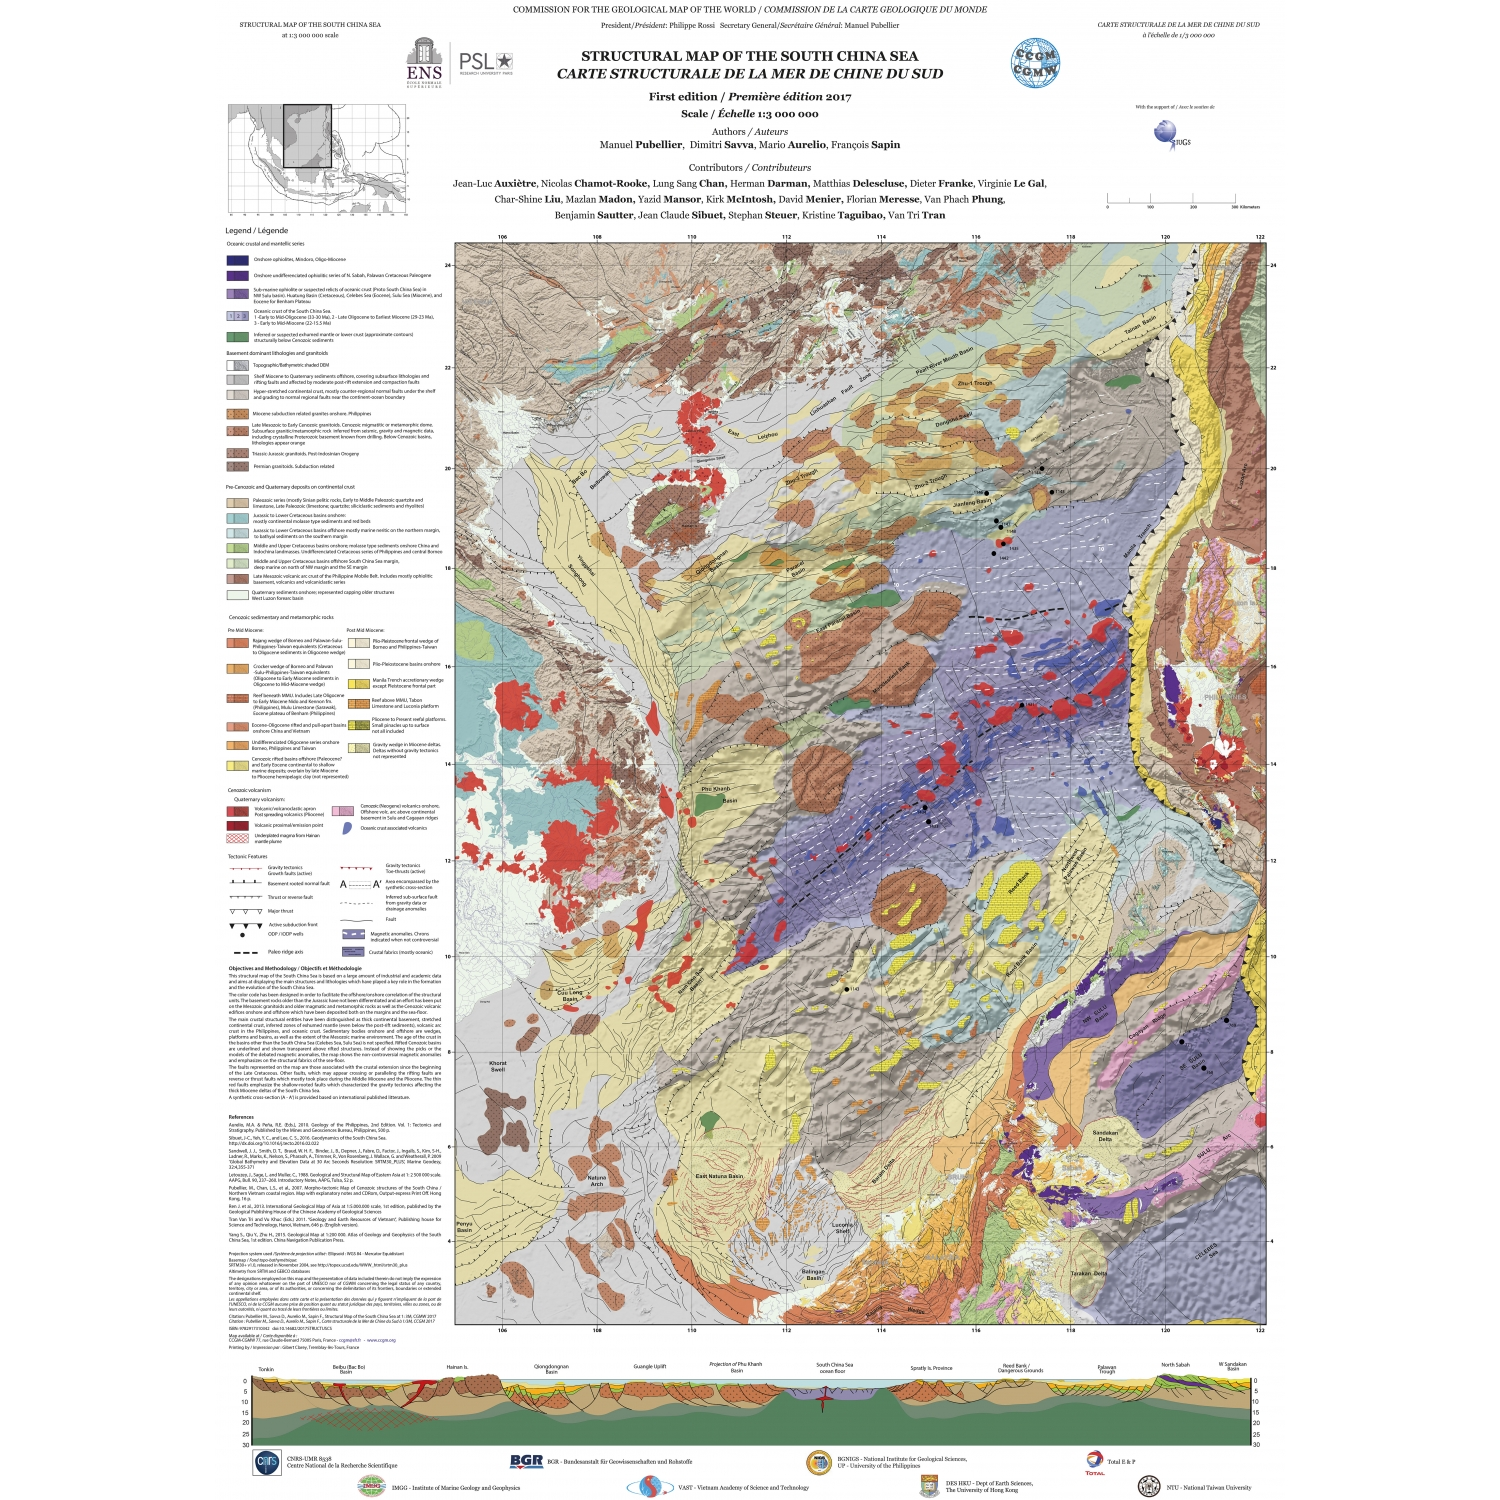 Structural map of the south china sea ccgm cgmw share on facebook gumiabroncs Images